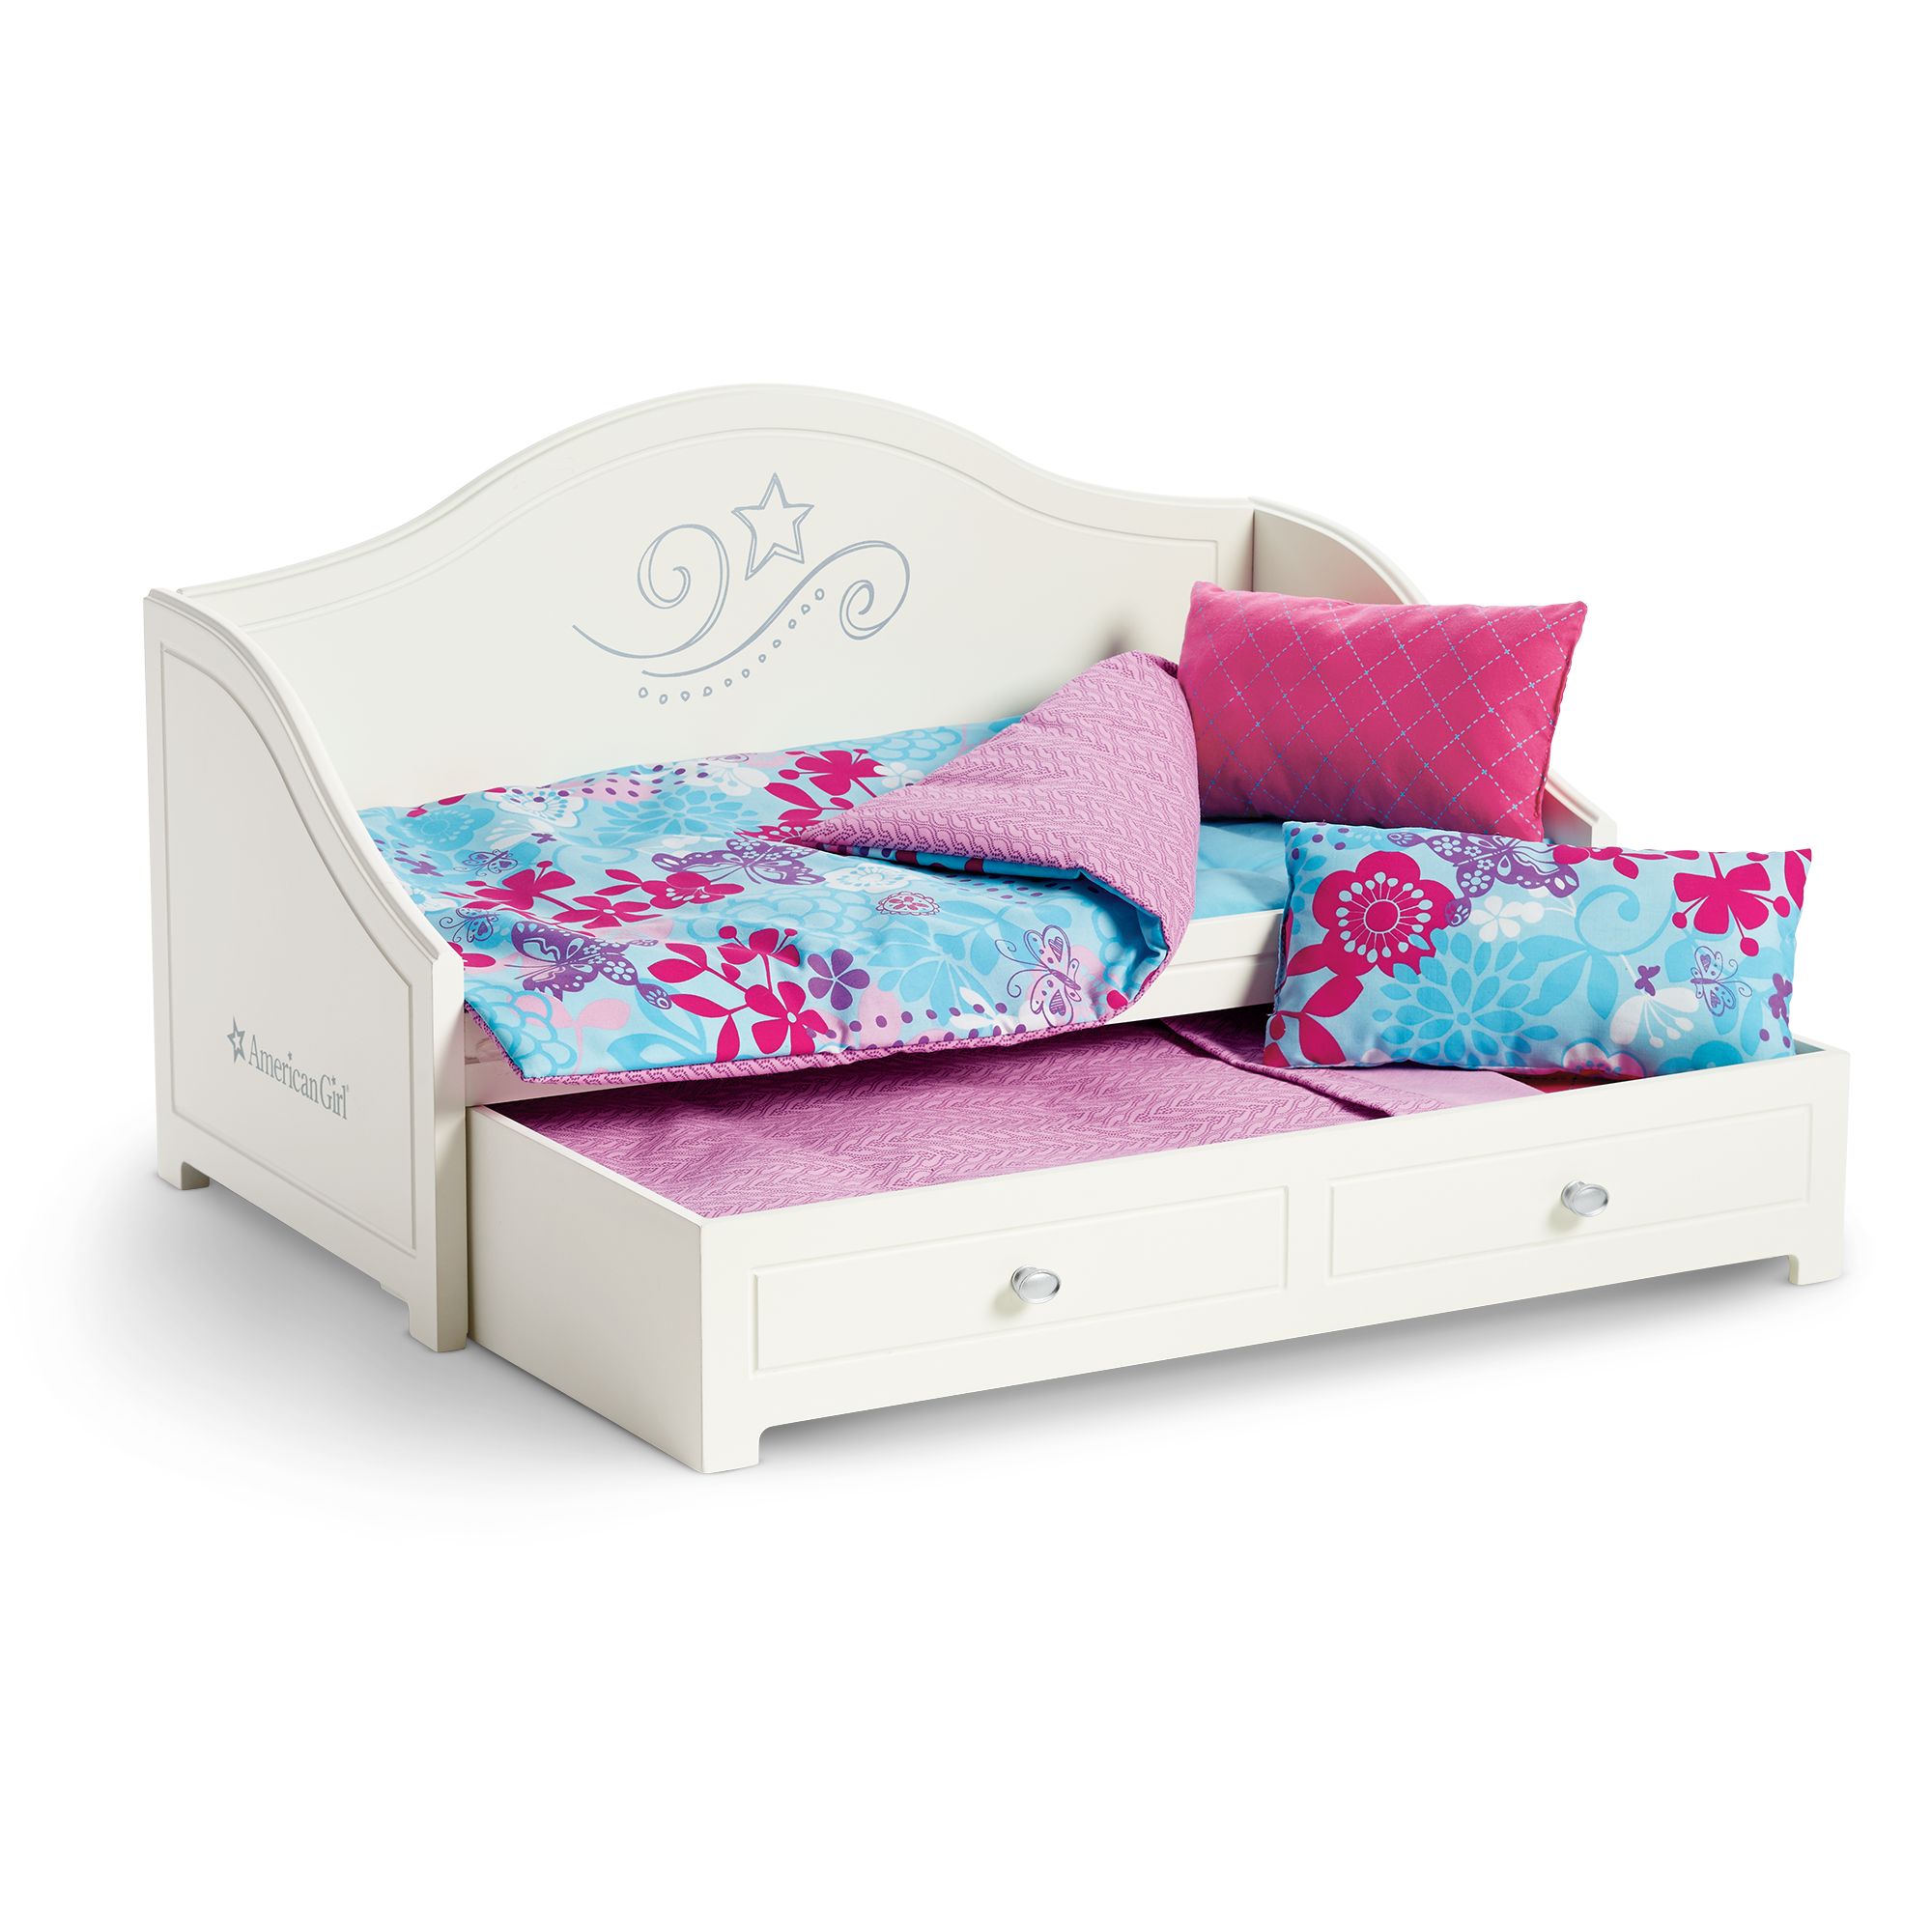 American Girl Trundle Bed And Bedding Set For Dolls Truly Me